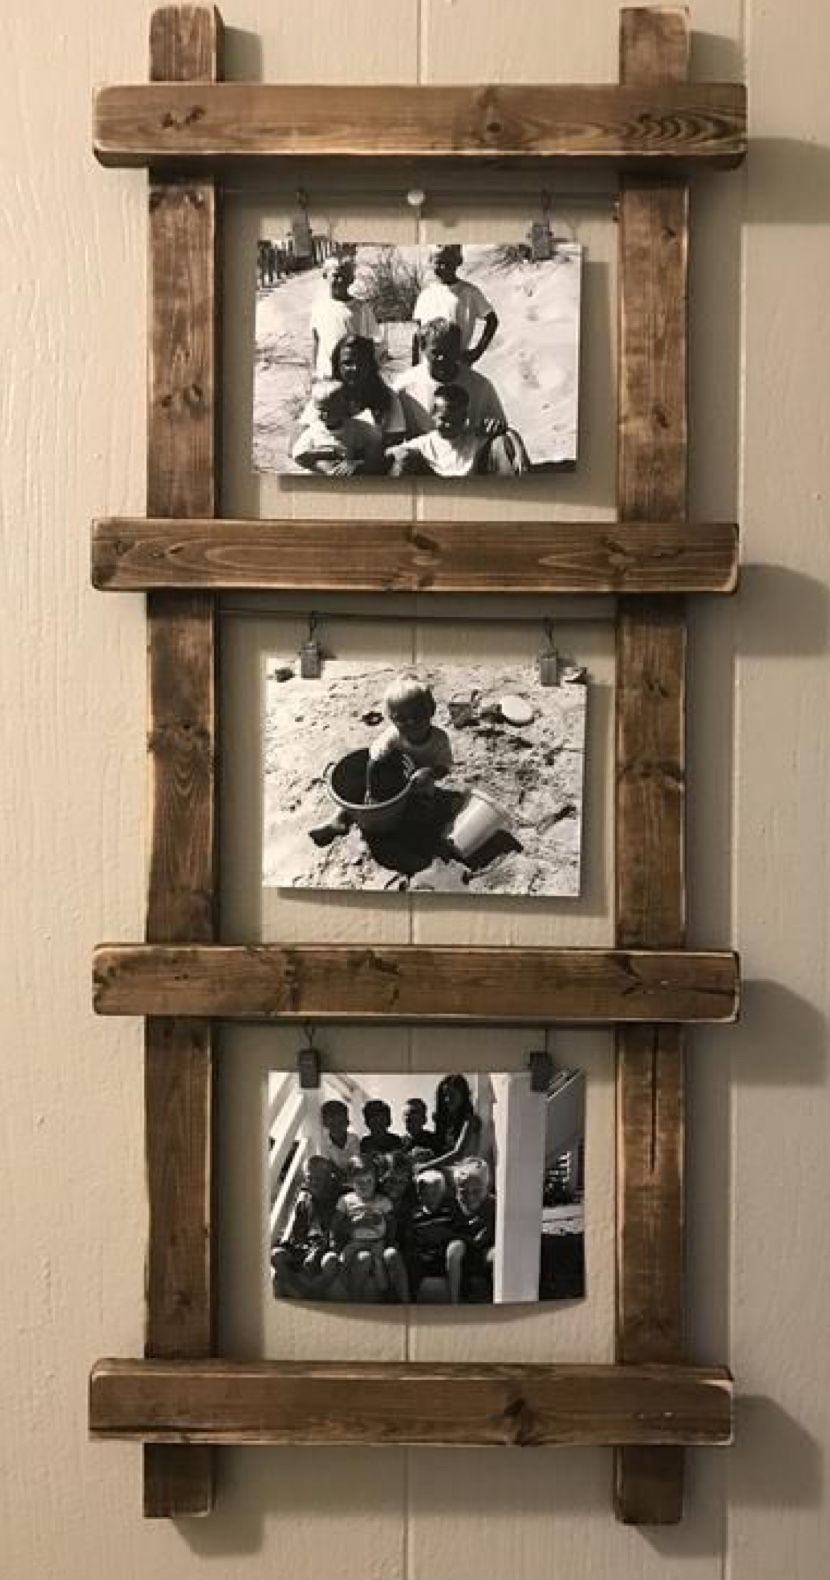 Pin By Adi On For The Home Handmade Home Rustic Diy Rustic Ladder